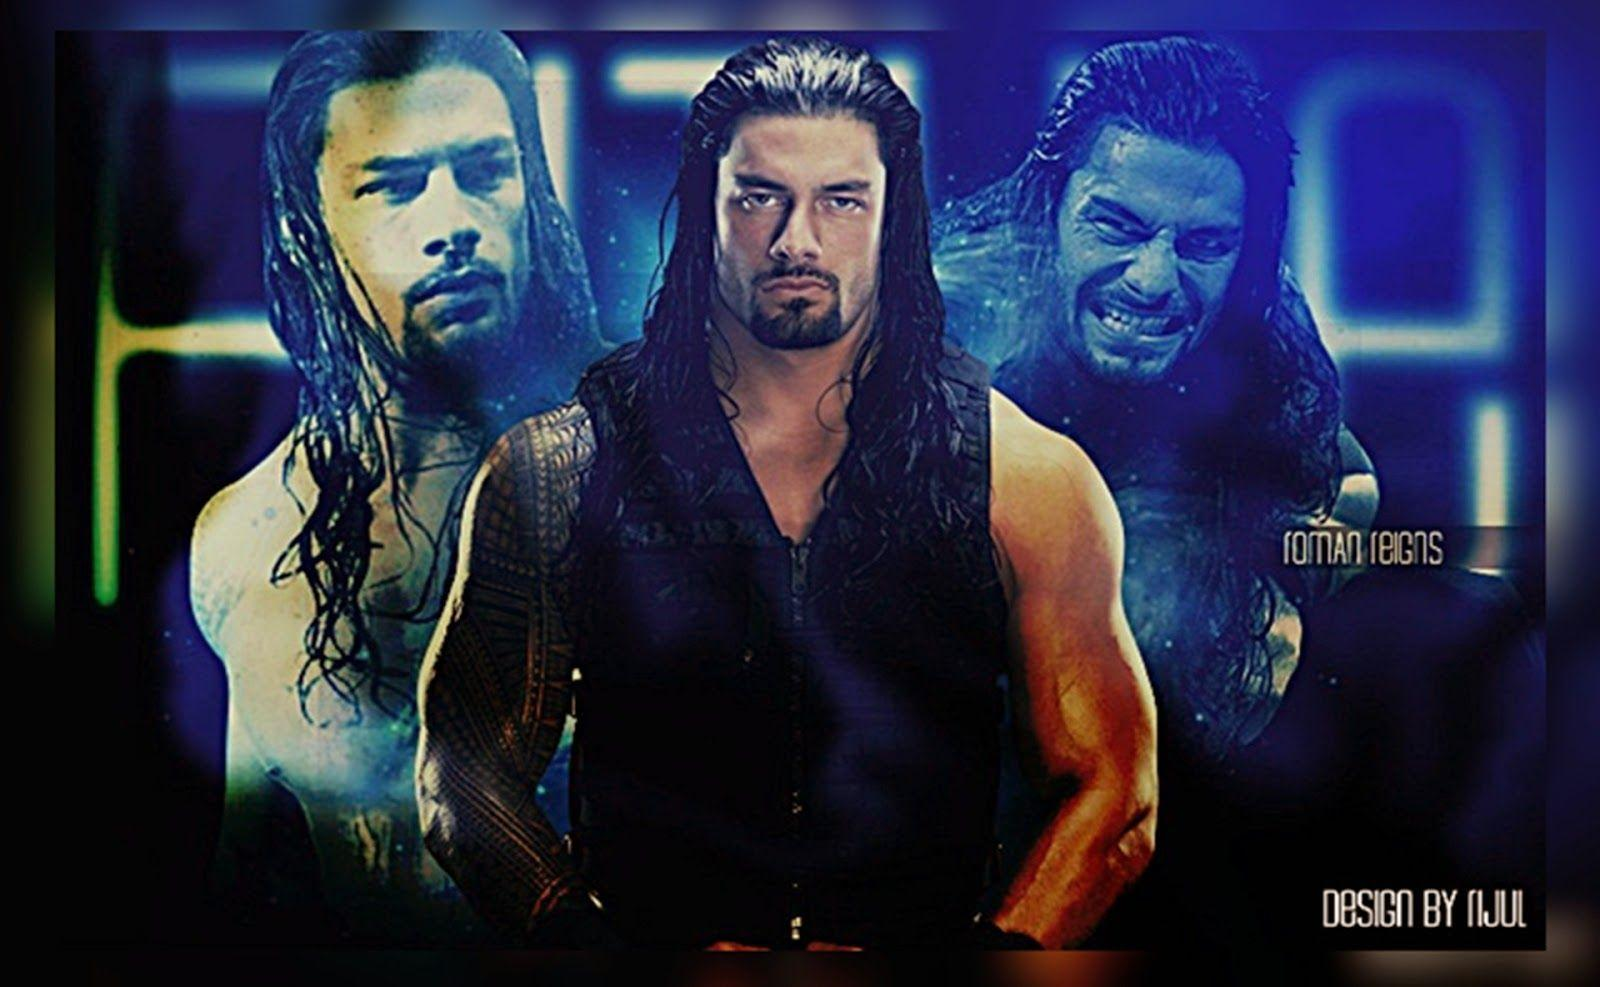 Roman Reigns HD Wallpapers | WWE HD Wallpapers, WWE Images, WWE ...